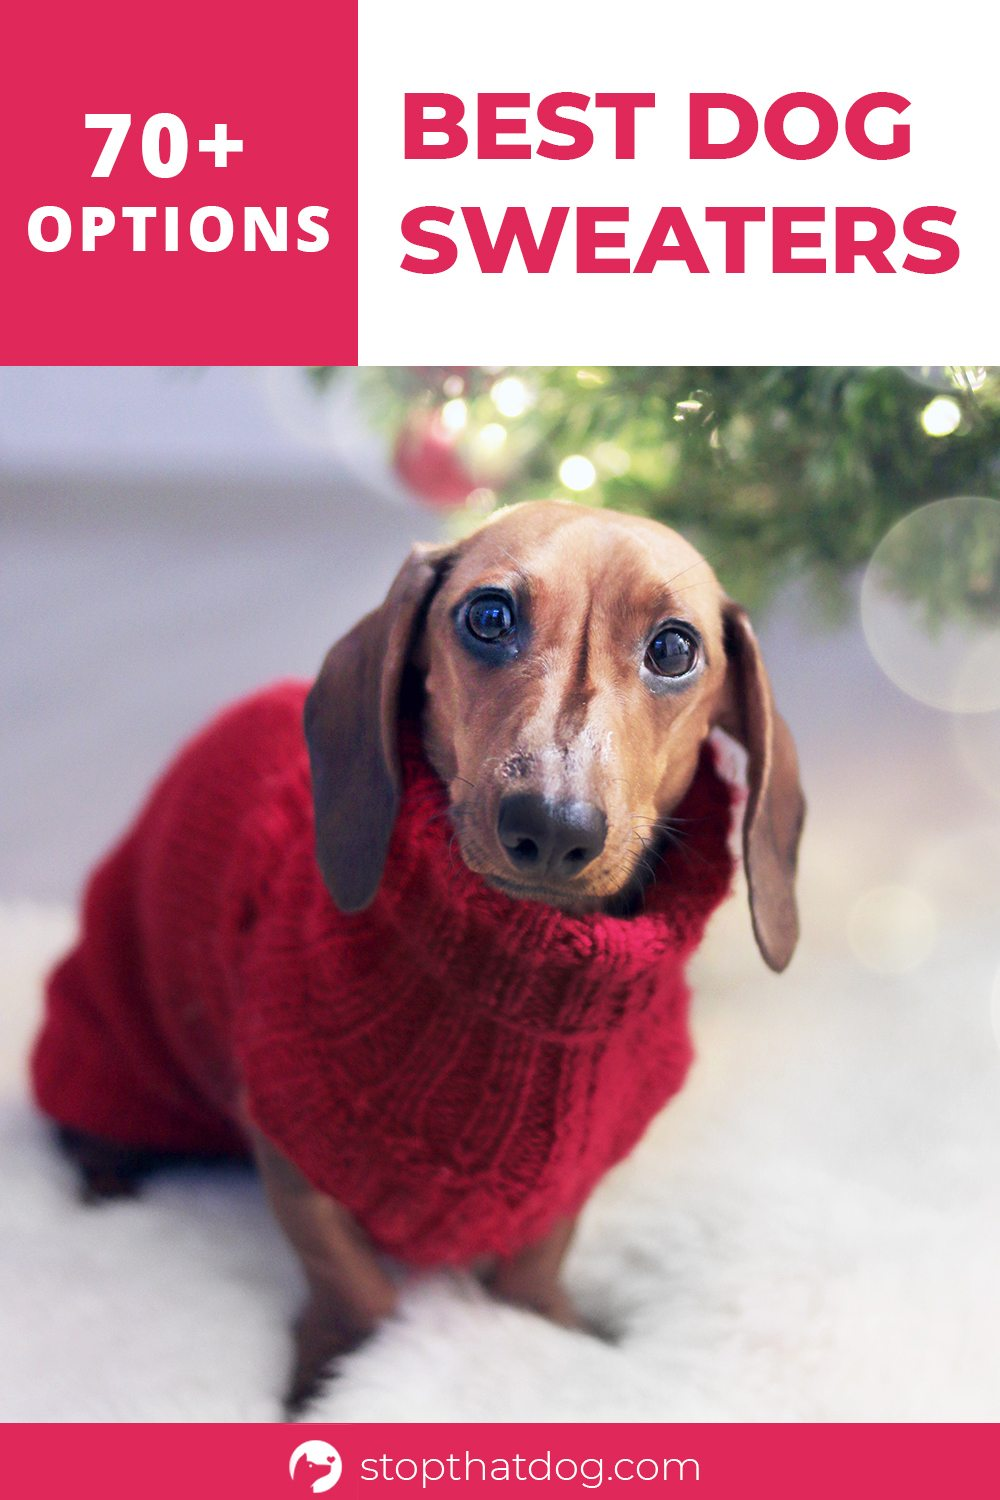 The Best Dog Sweaters For 2020 (Over 70+ Options To Choose From!)